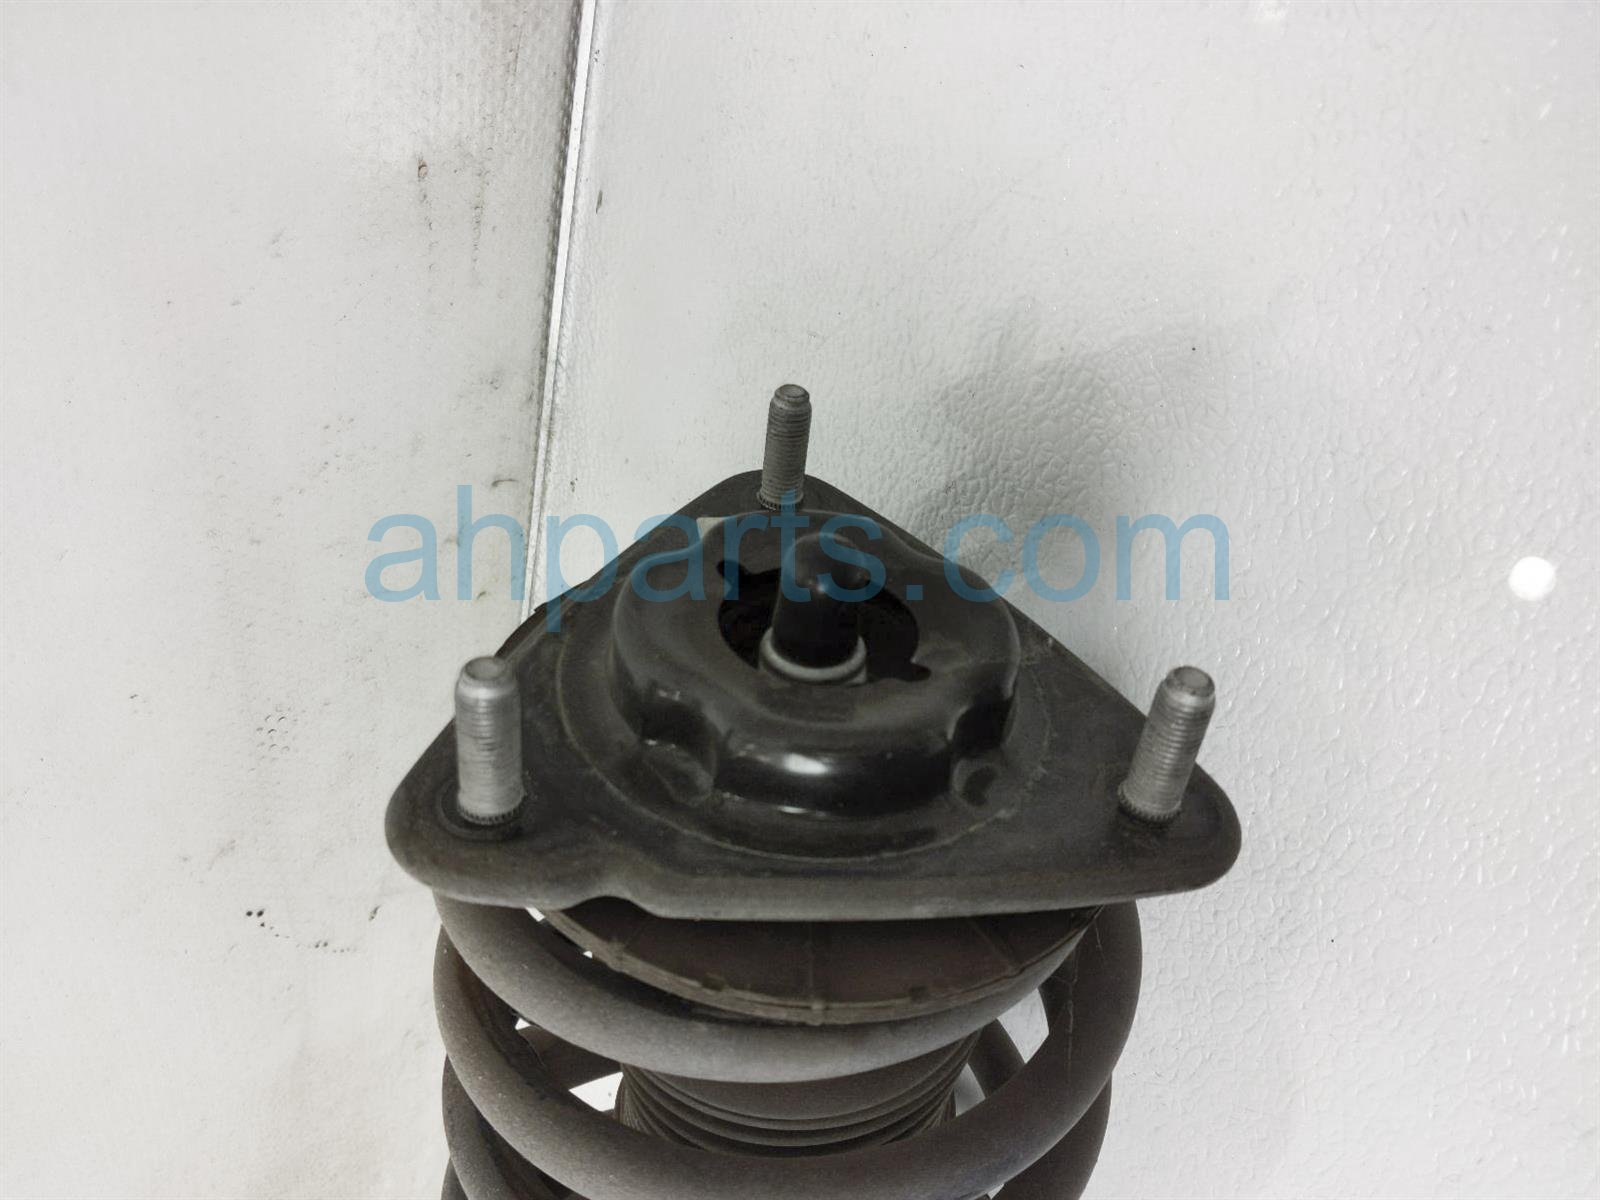 2017 Ford Mustang Front Driver Strut + Spring JR3Z 18124 A Replacement